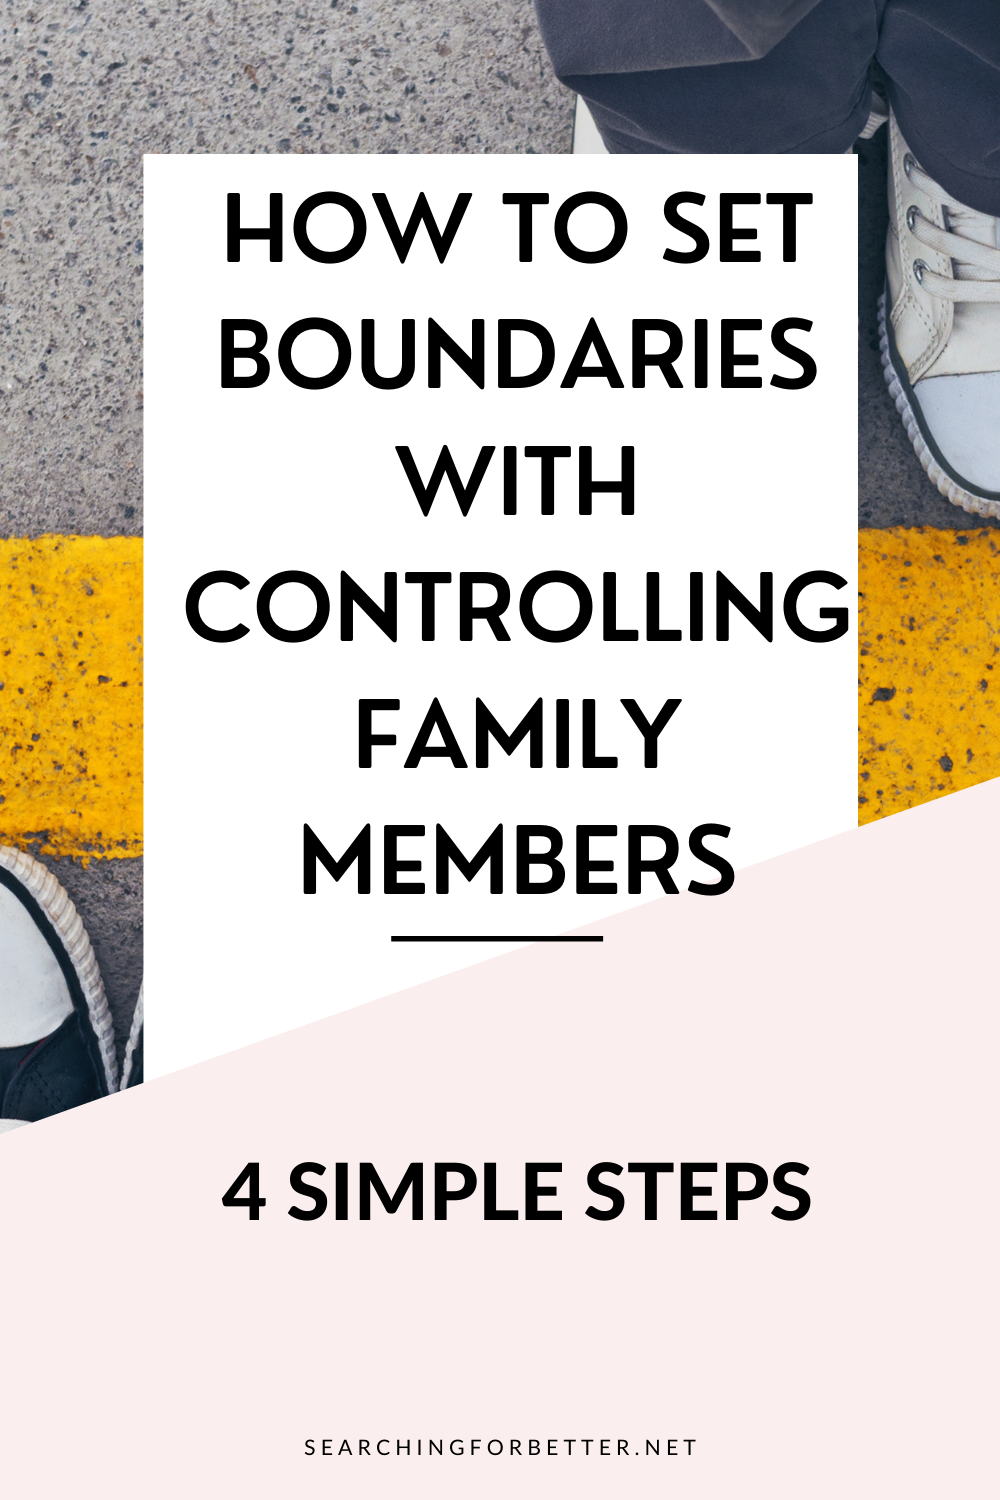 how to set boundaries with controlling family members 1